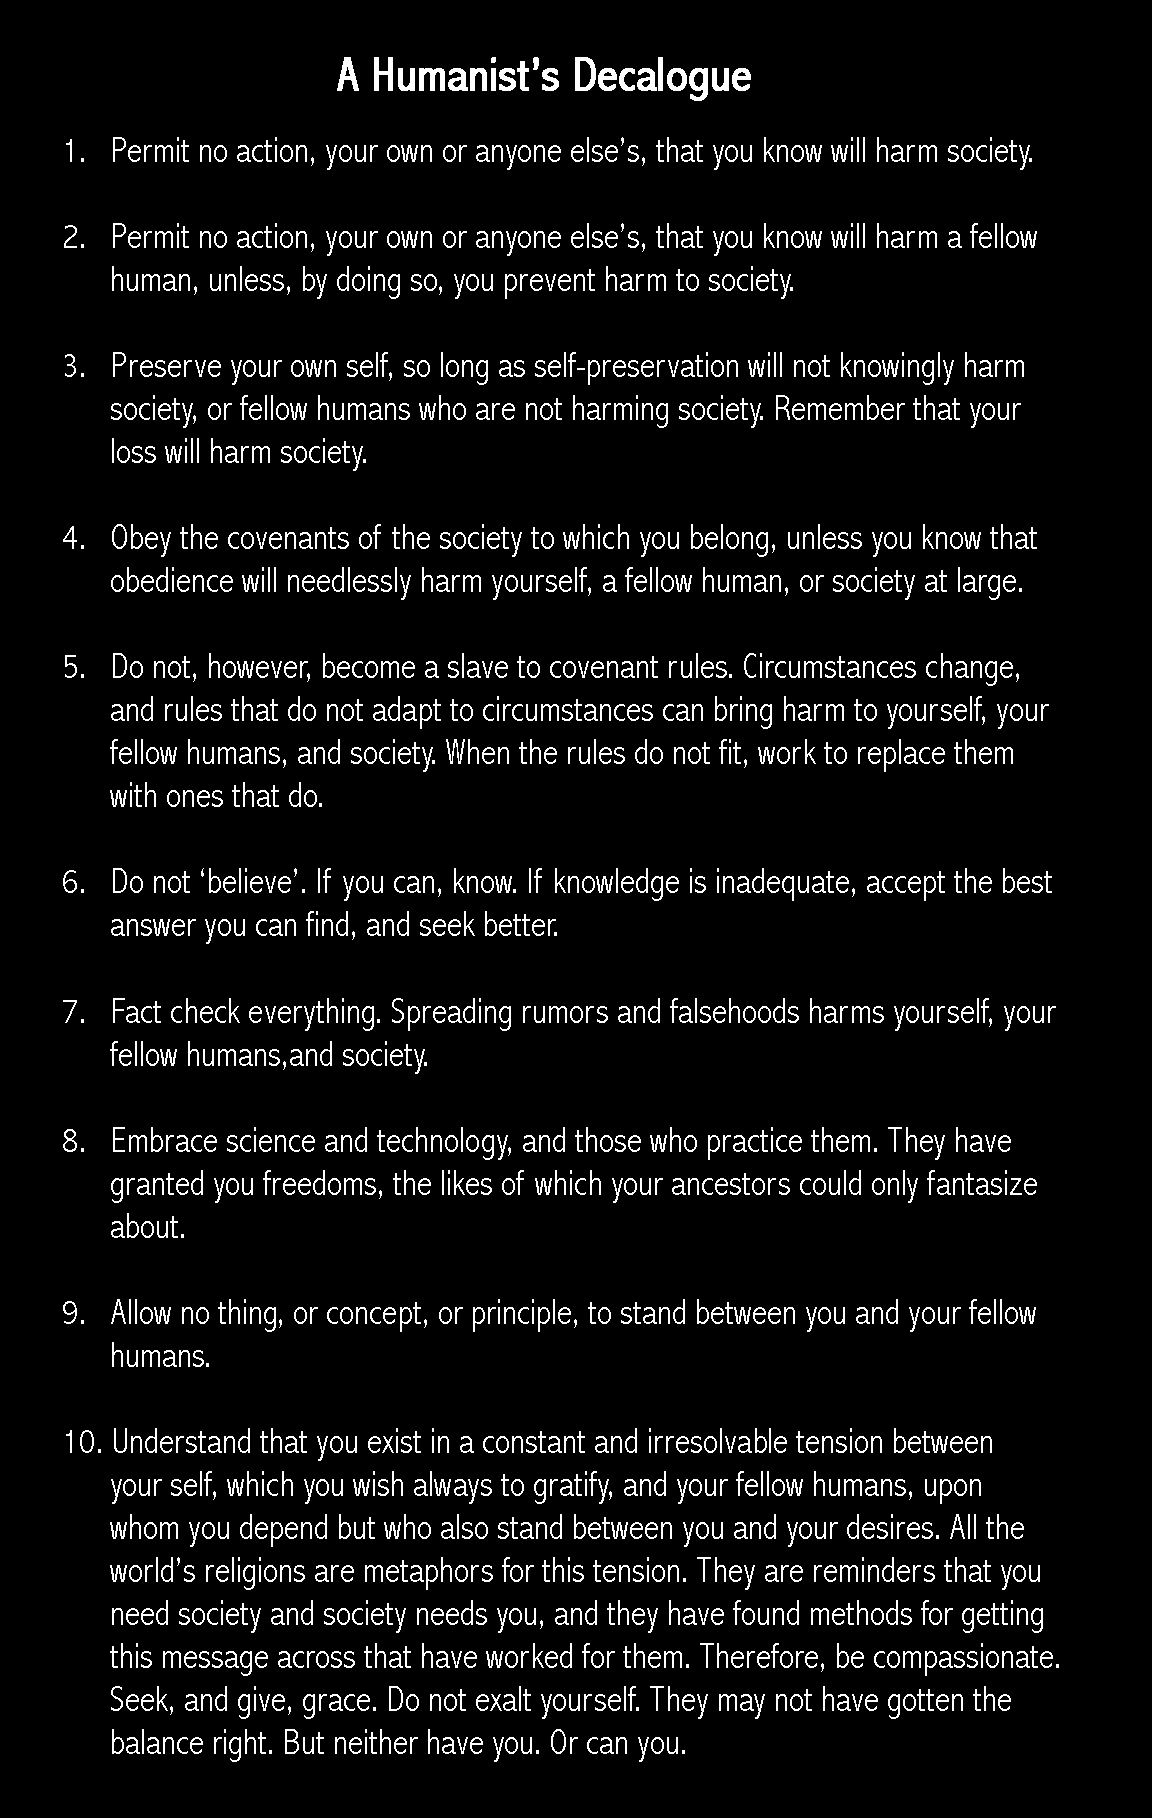 A humanist's decalogue